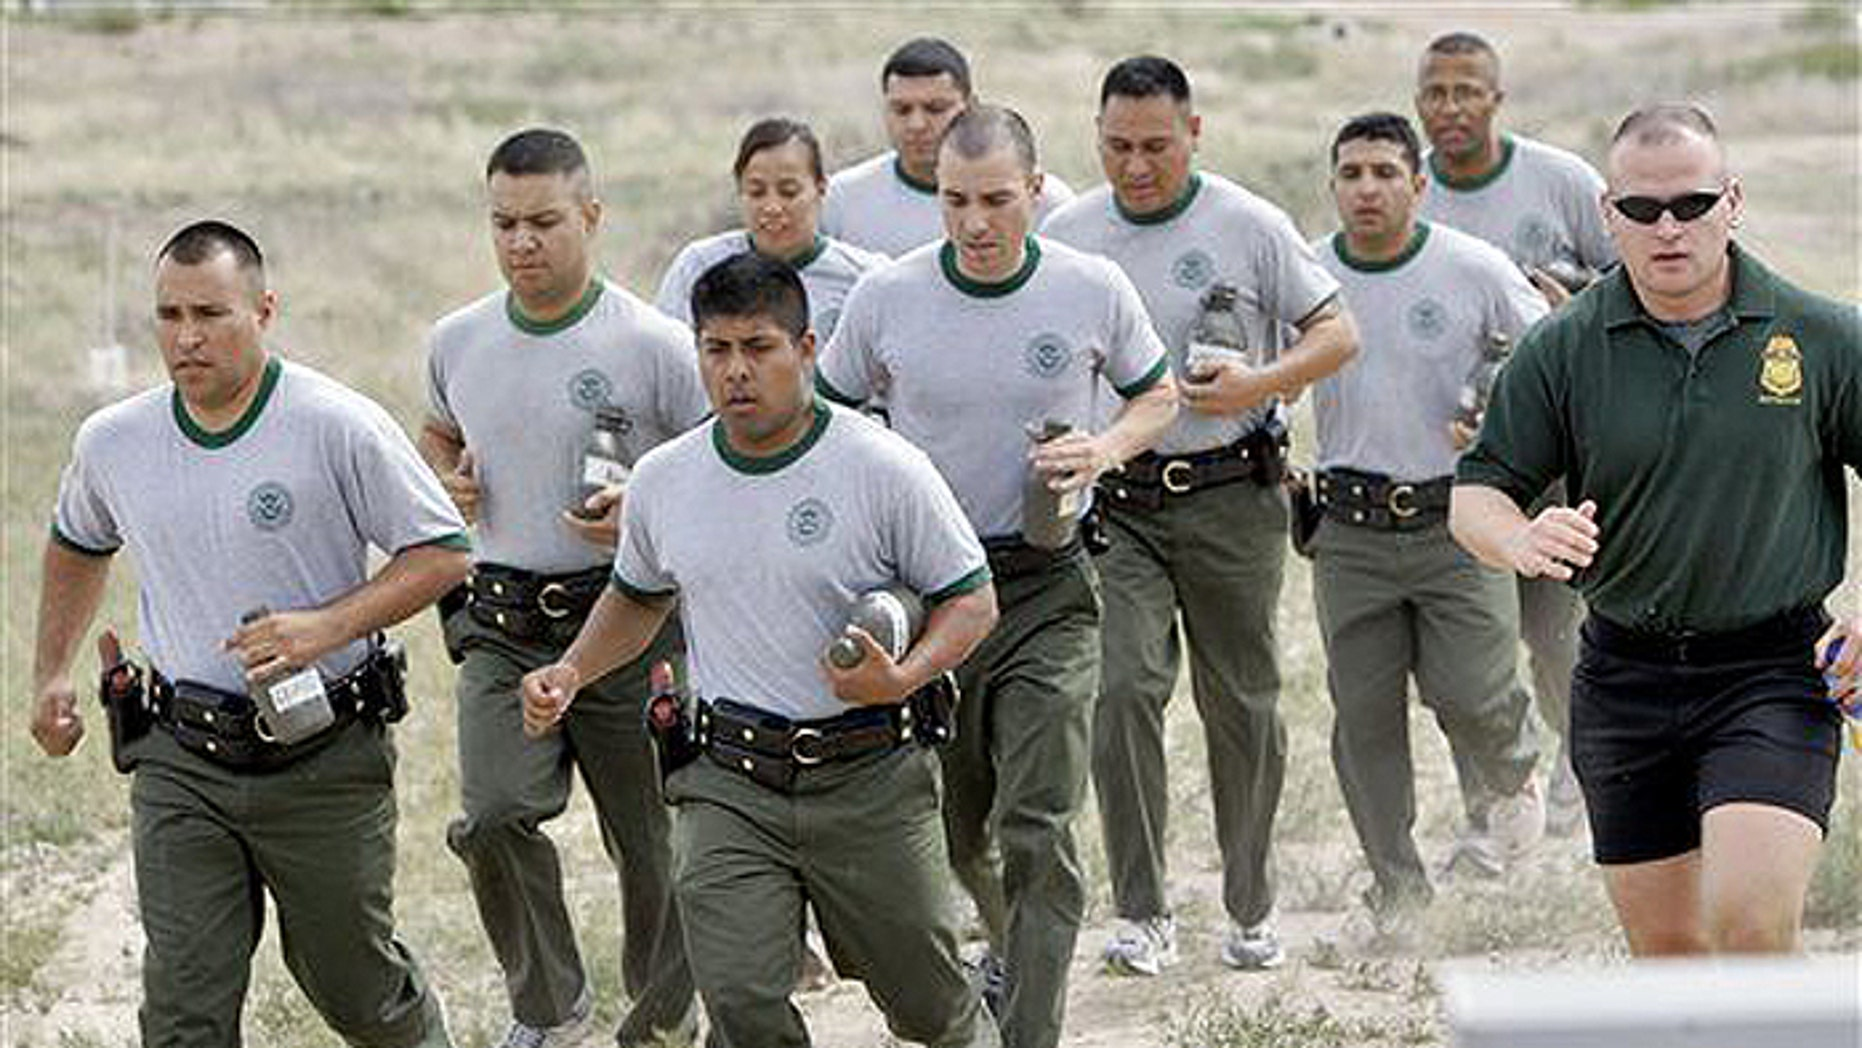 Mixed message': Feds to house, feed illegal aliens in Border